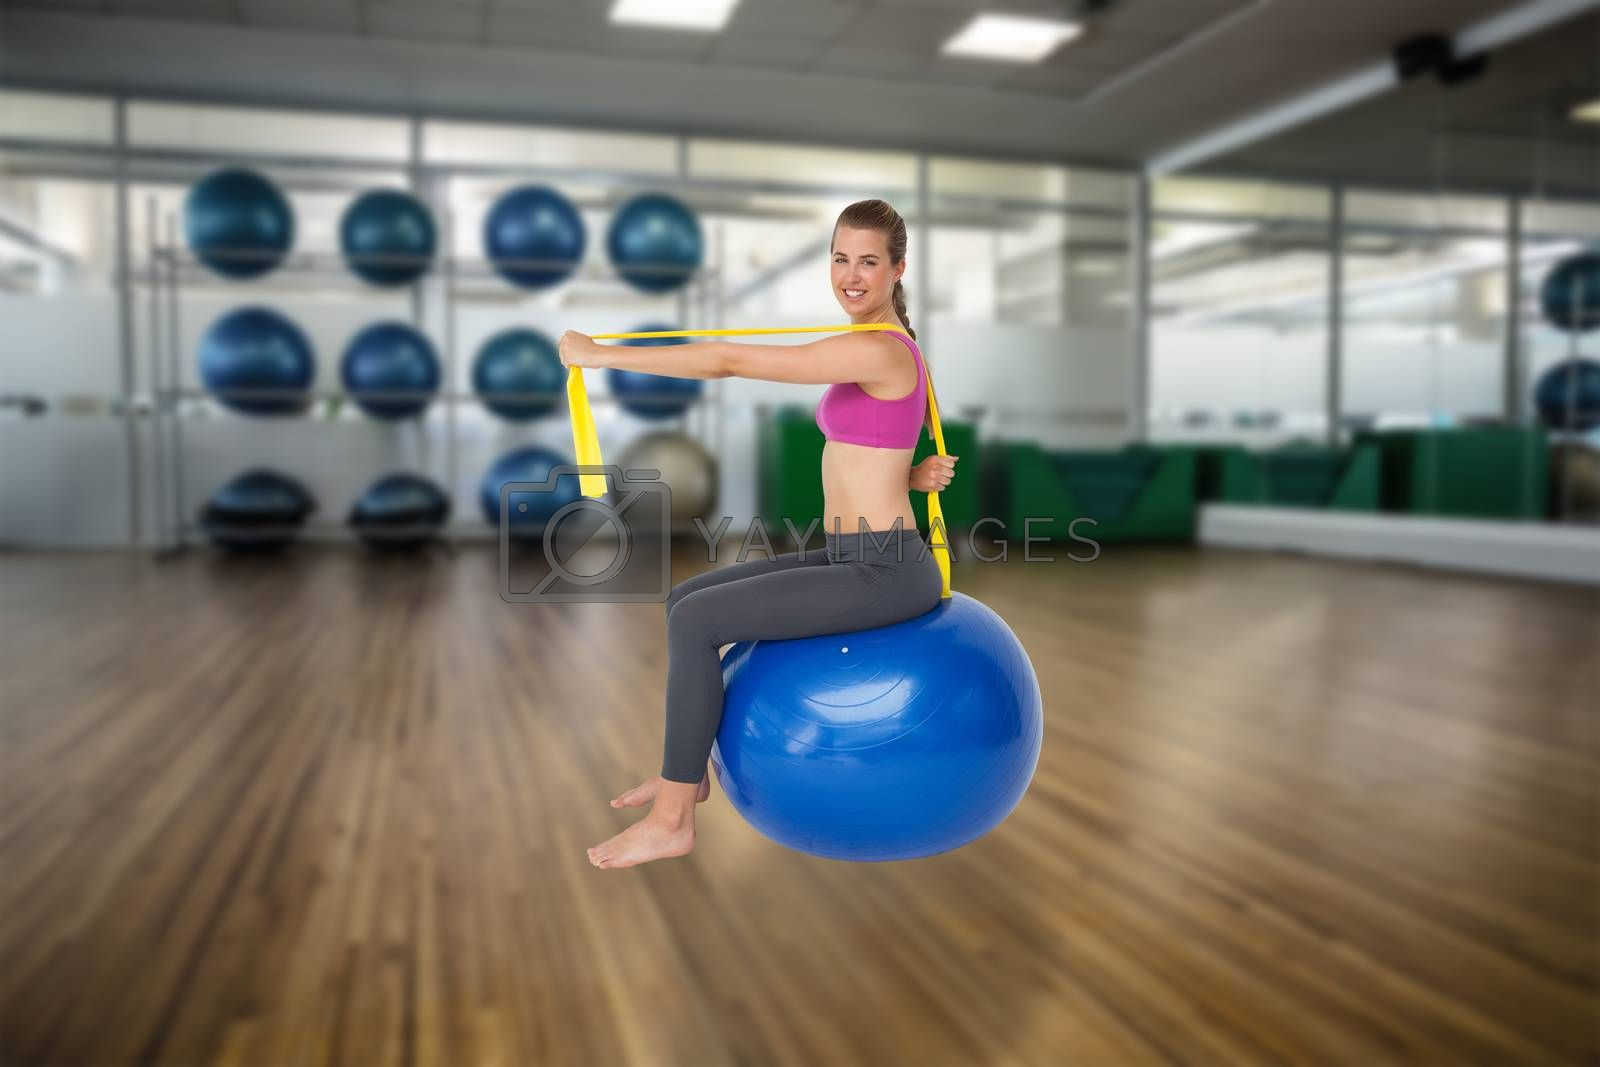 Full length portrait of fit woman exercising on fitness ball against large empty fitness studio with shelf of exercise balls